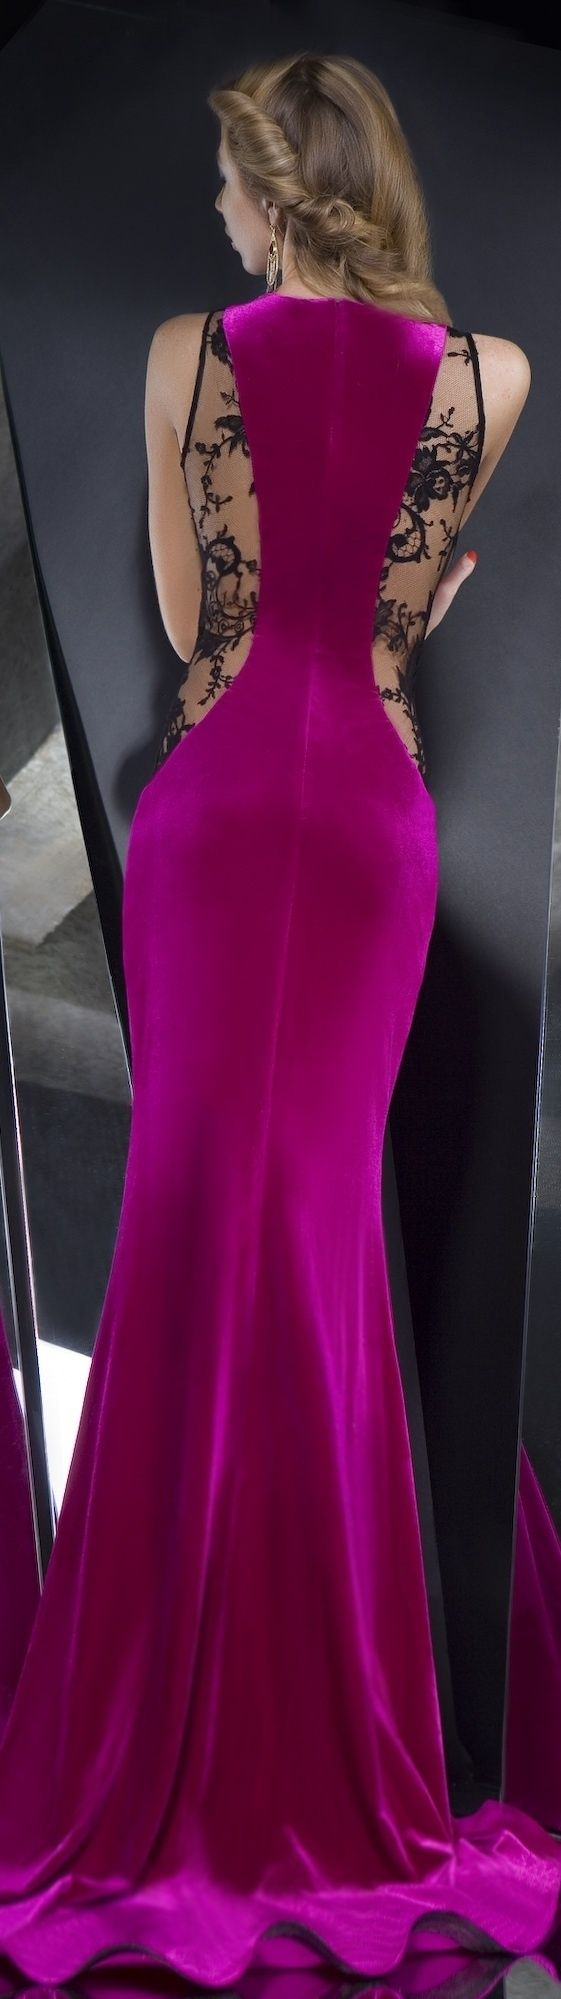 Carolina Herrera 2014Stunning... look at that colour | Dress ...